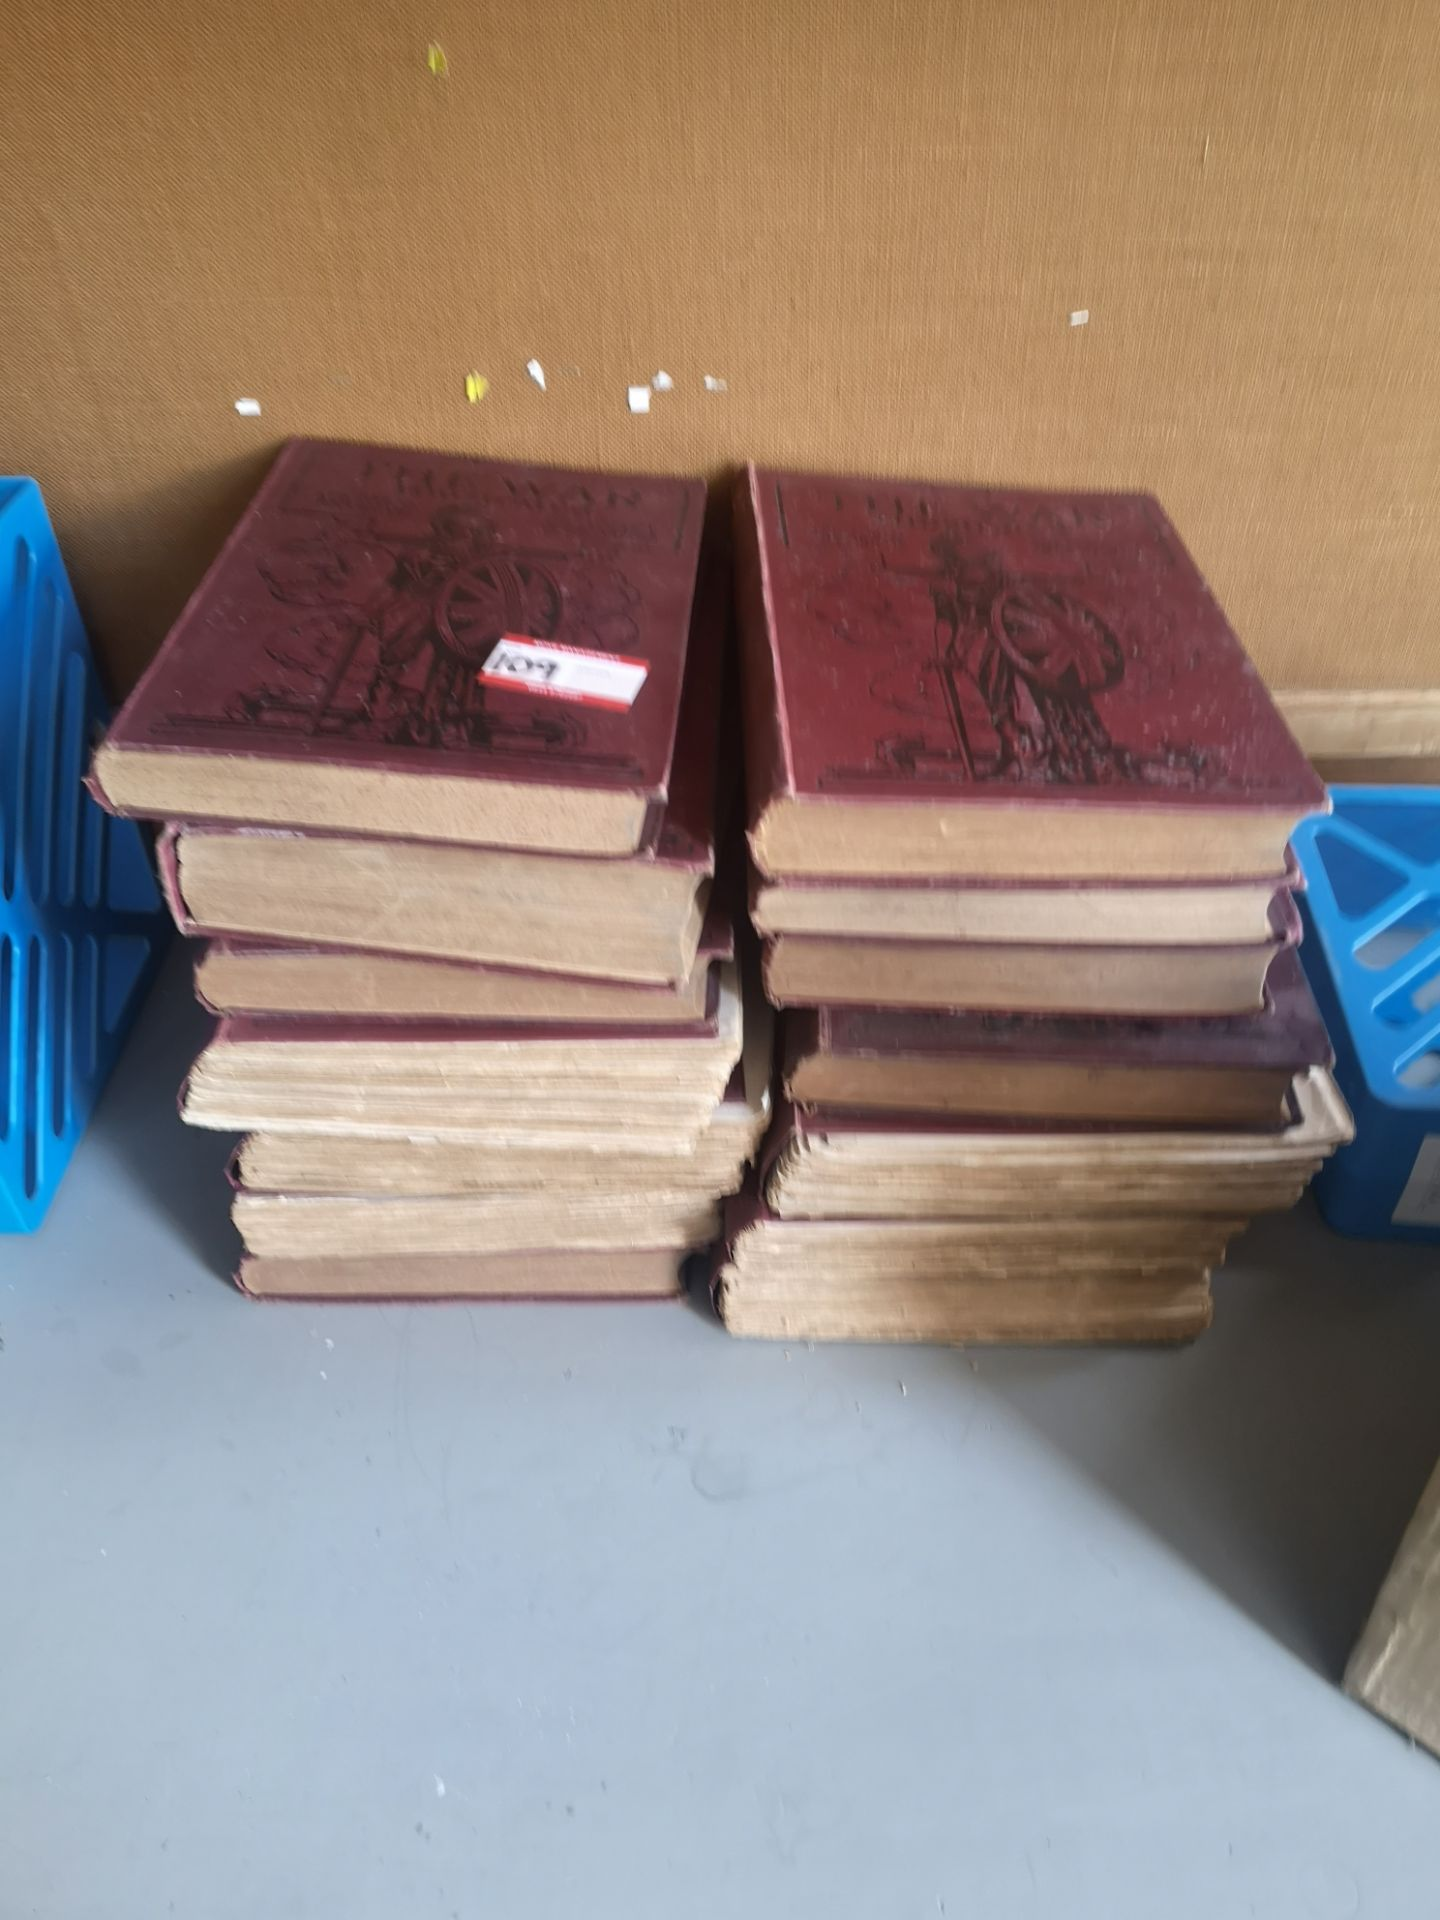 Lot 109 - assorted vintage The WAR books